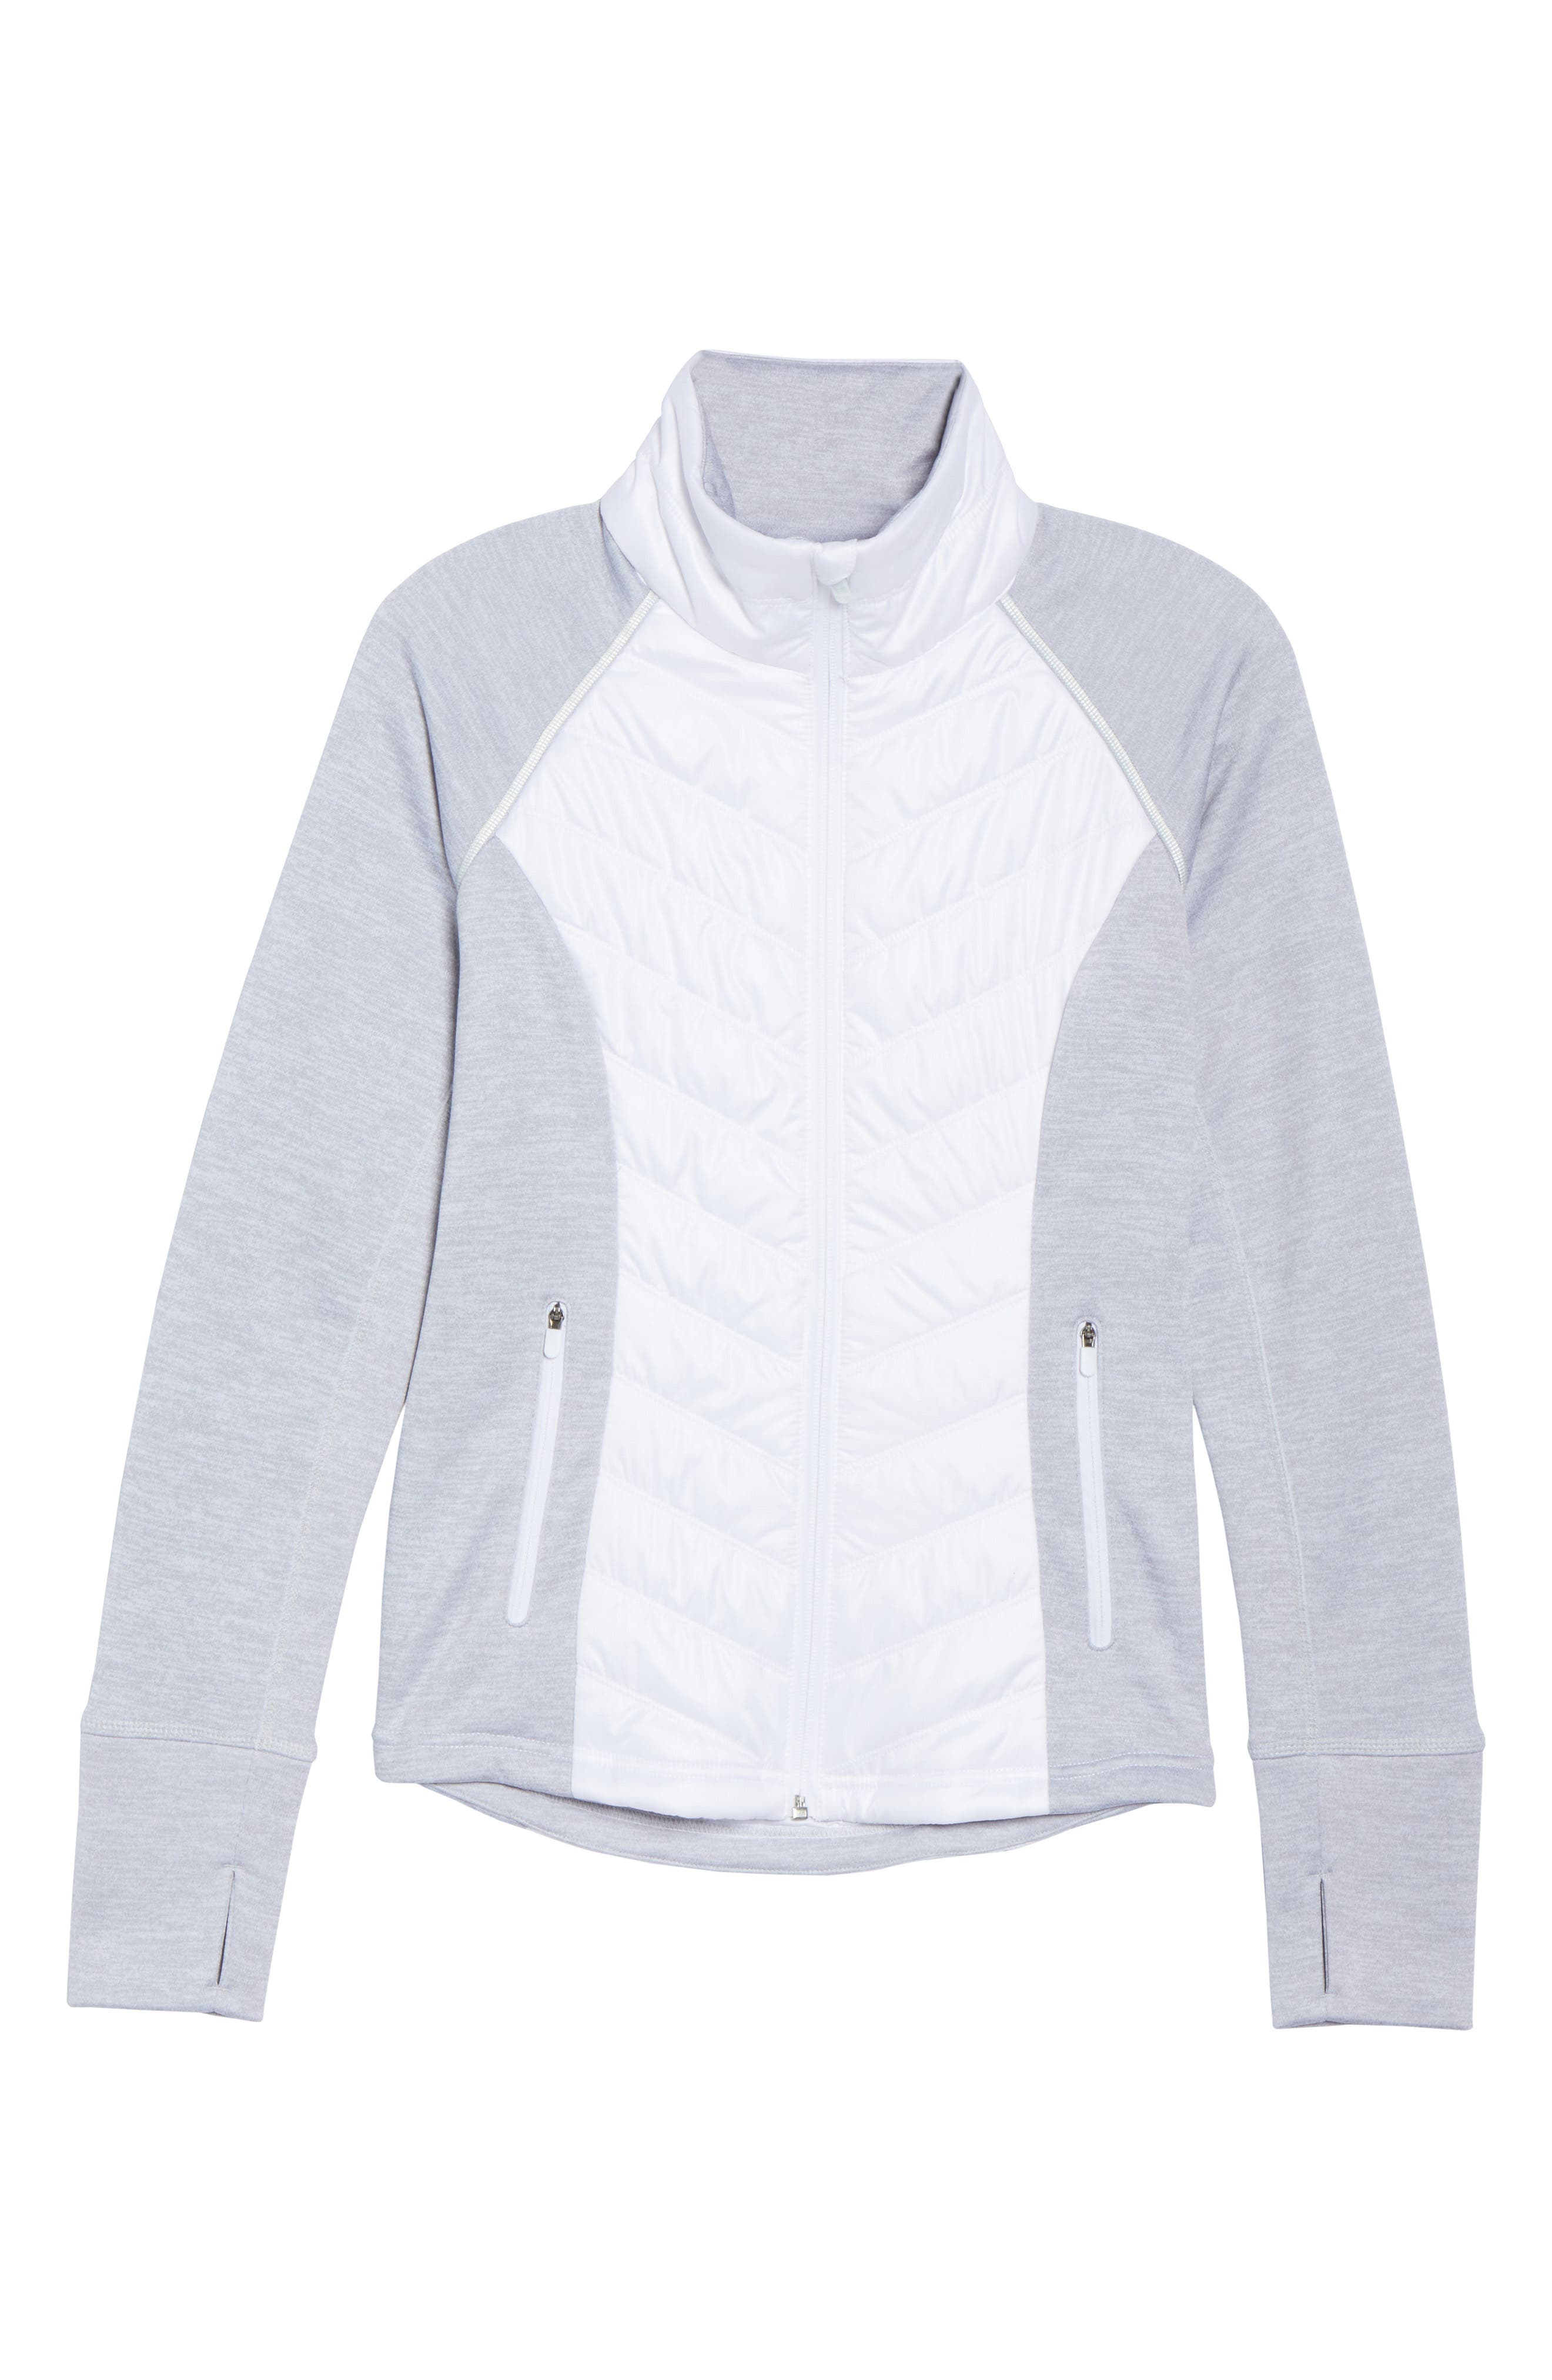 Zelfusion Reflective Quilted Jacket,                             Alternate thumbnail 44, color,